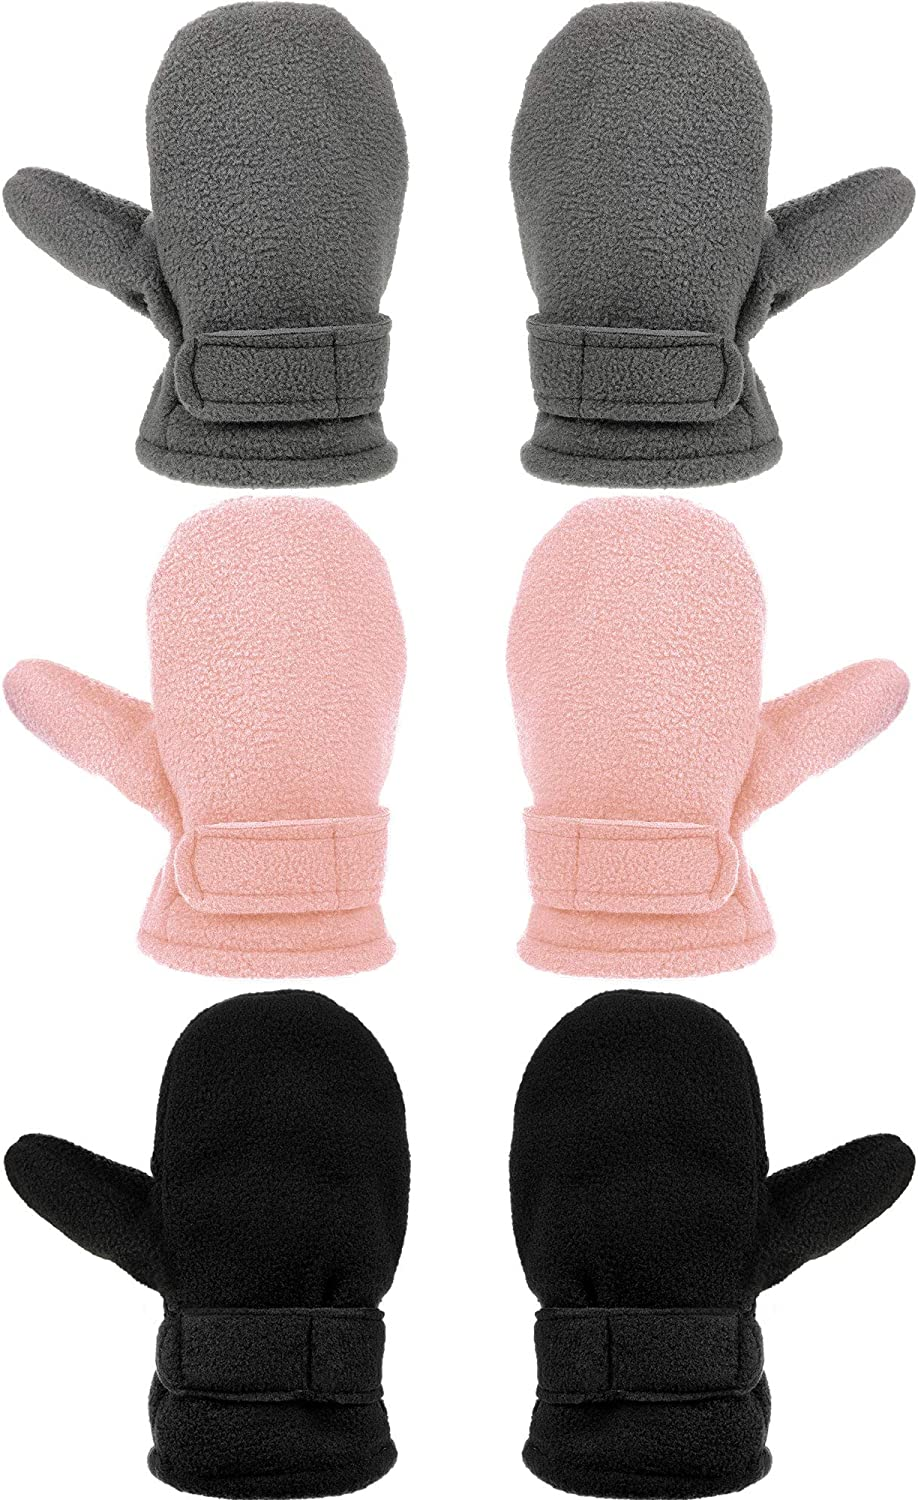 3 Pairs Baby Toddler Winter Mittens Warm Fleece Kids Mittens Baby Snow Skiing Gloves for Boys and Girls Aged 2-4 Years